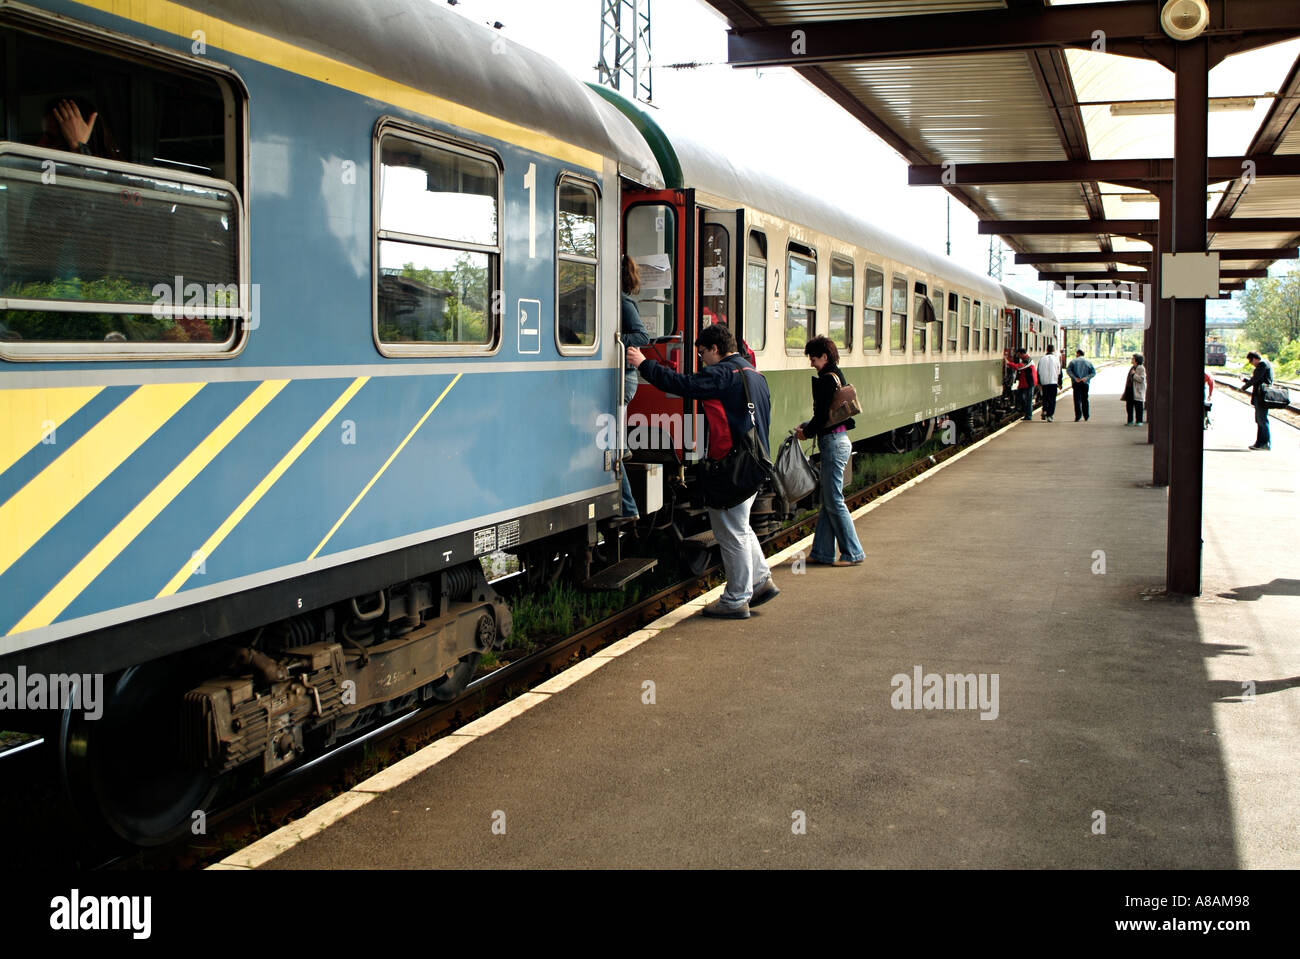 Passengers Boarding a Train Carriage at a Railway Station - Stock Image